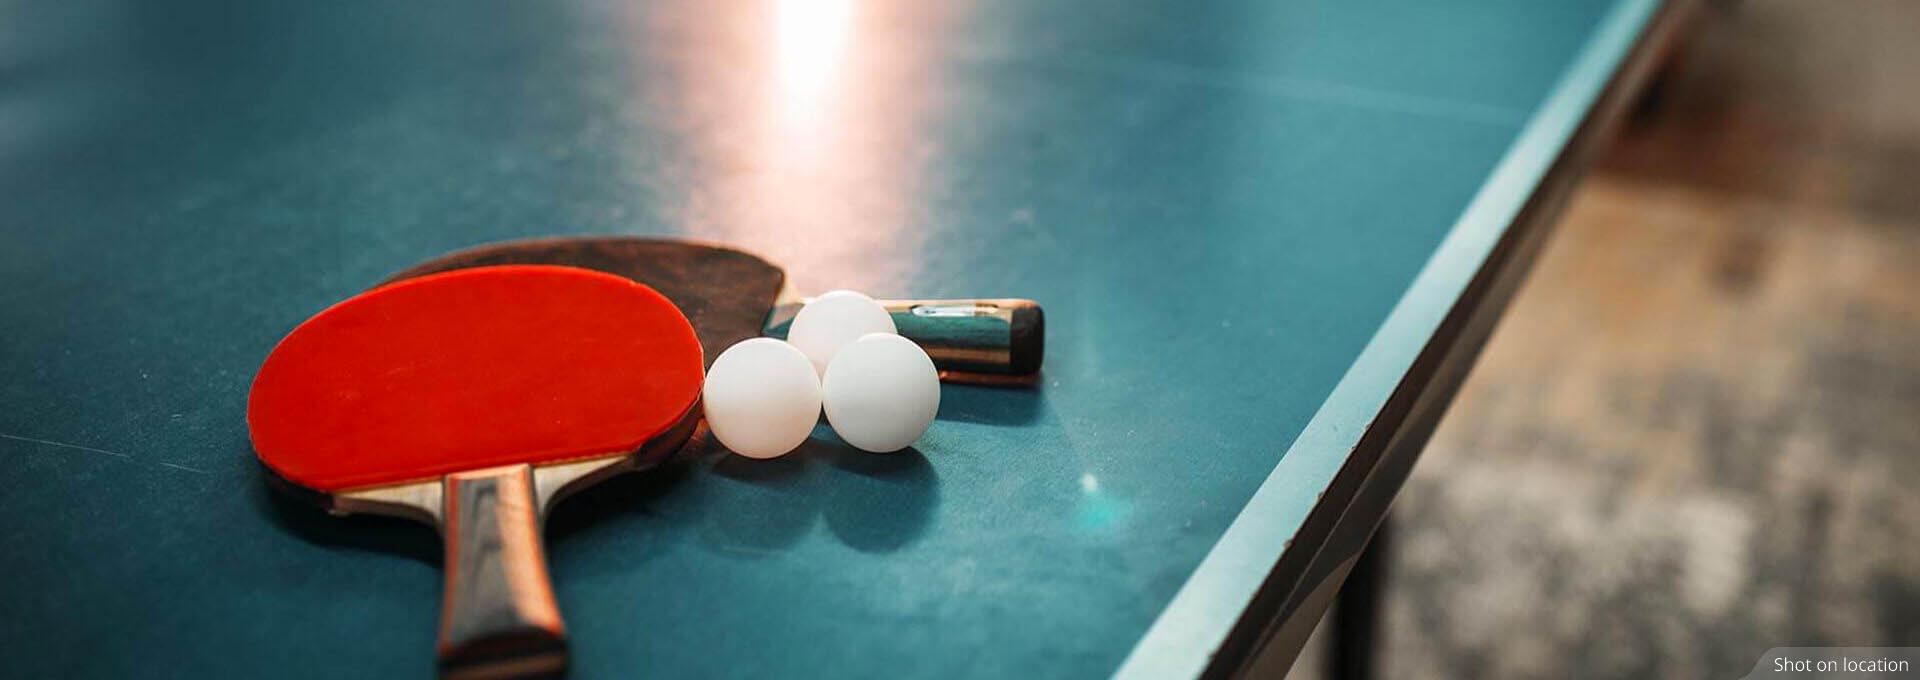 Table tennis court in Crossgate by House of Hiranandani in Devanahalli, Bengaluru